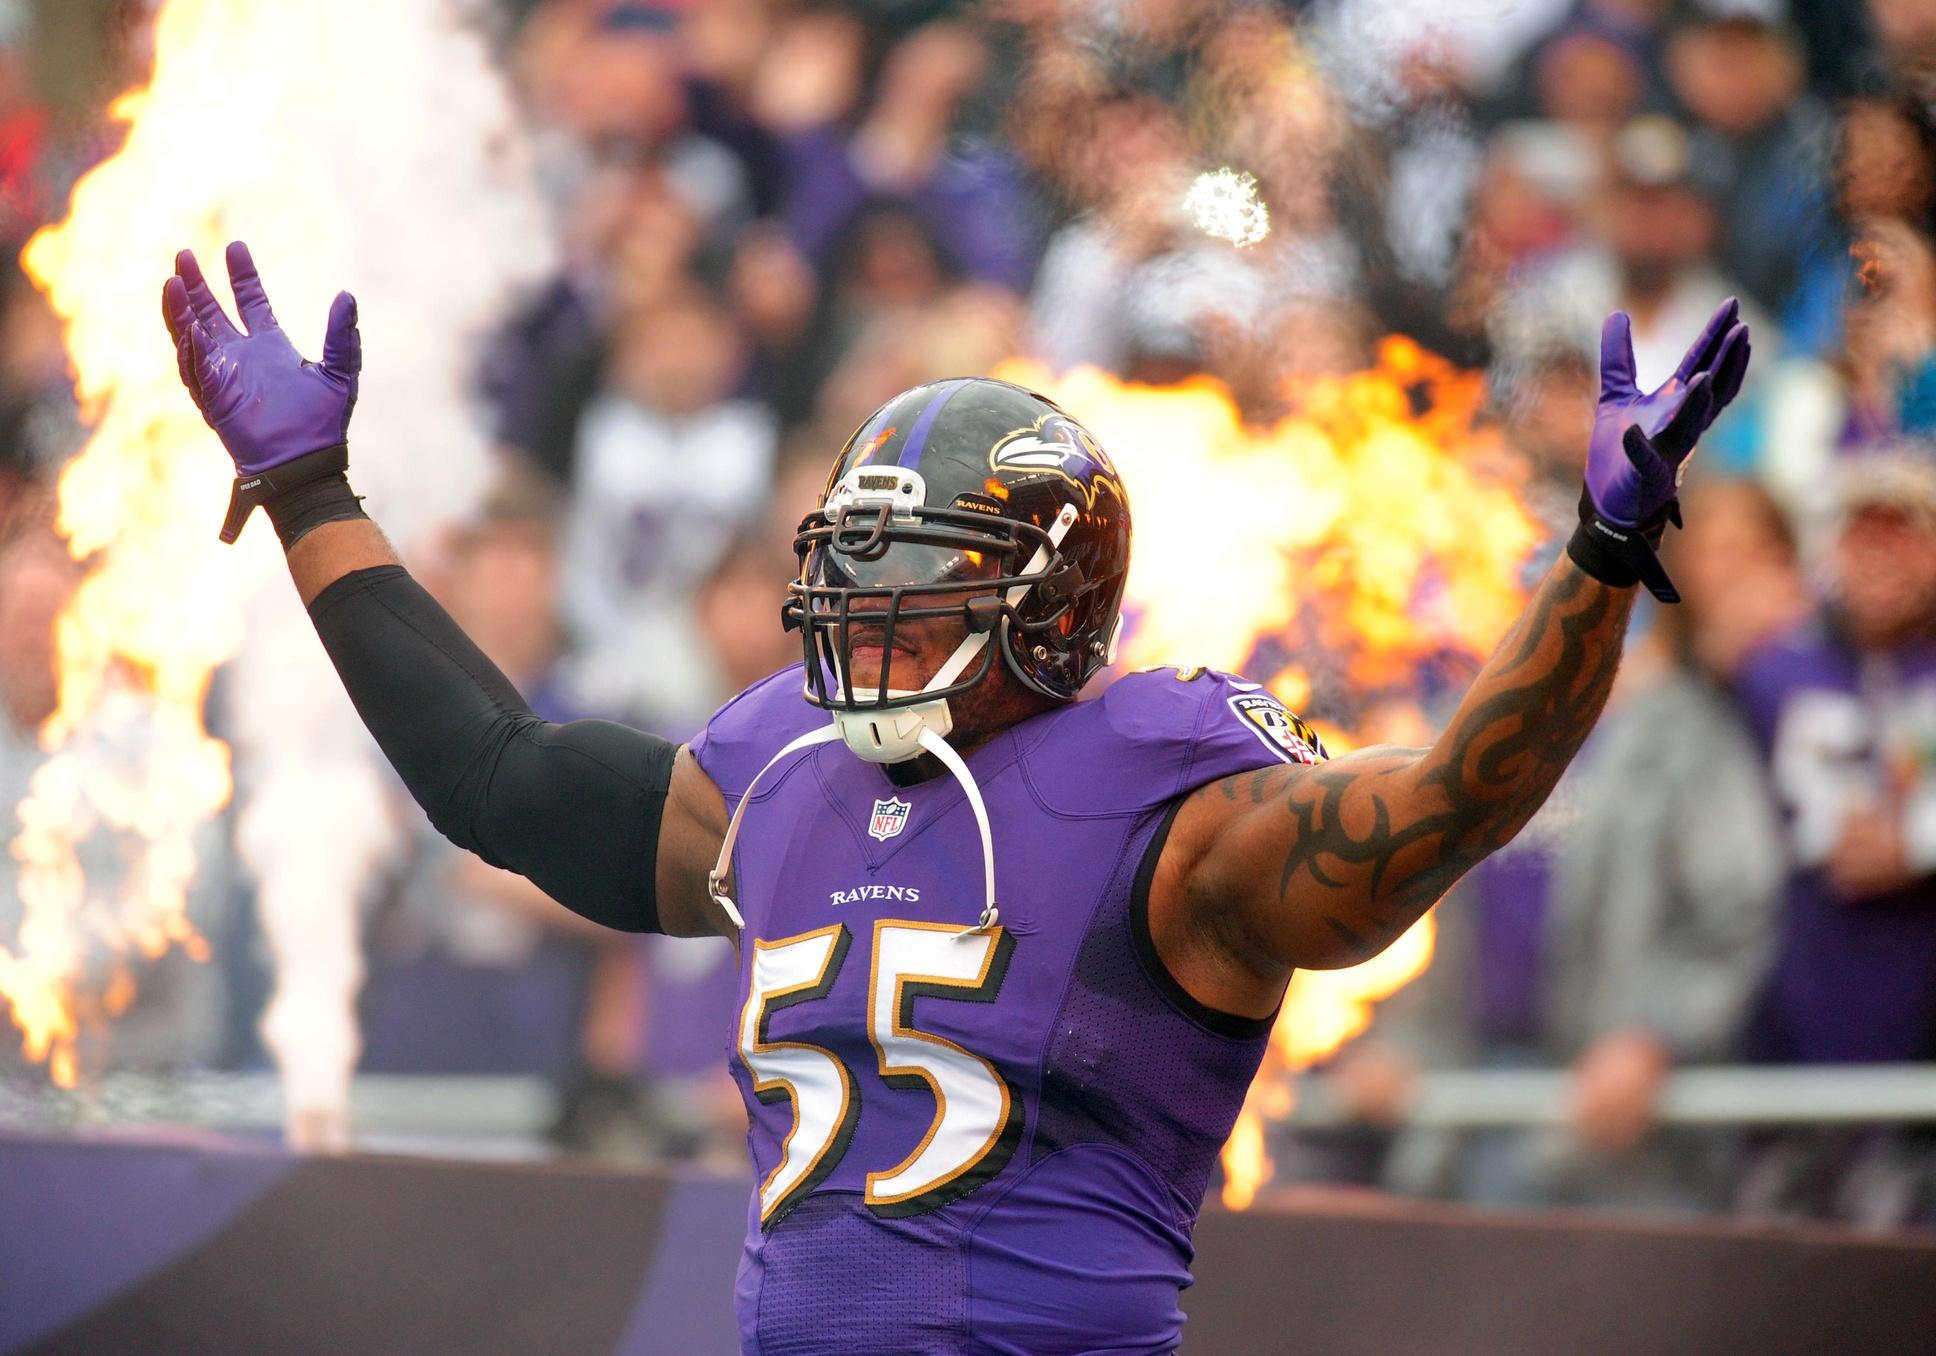 Even after hit on Bradford, Suggs won't shy away from villain role